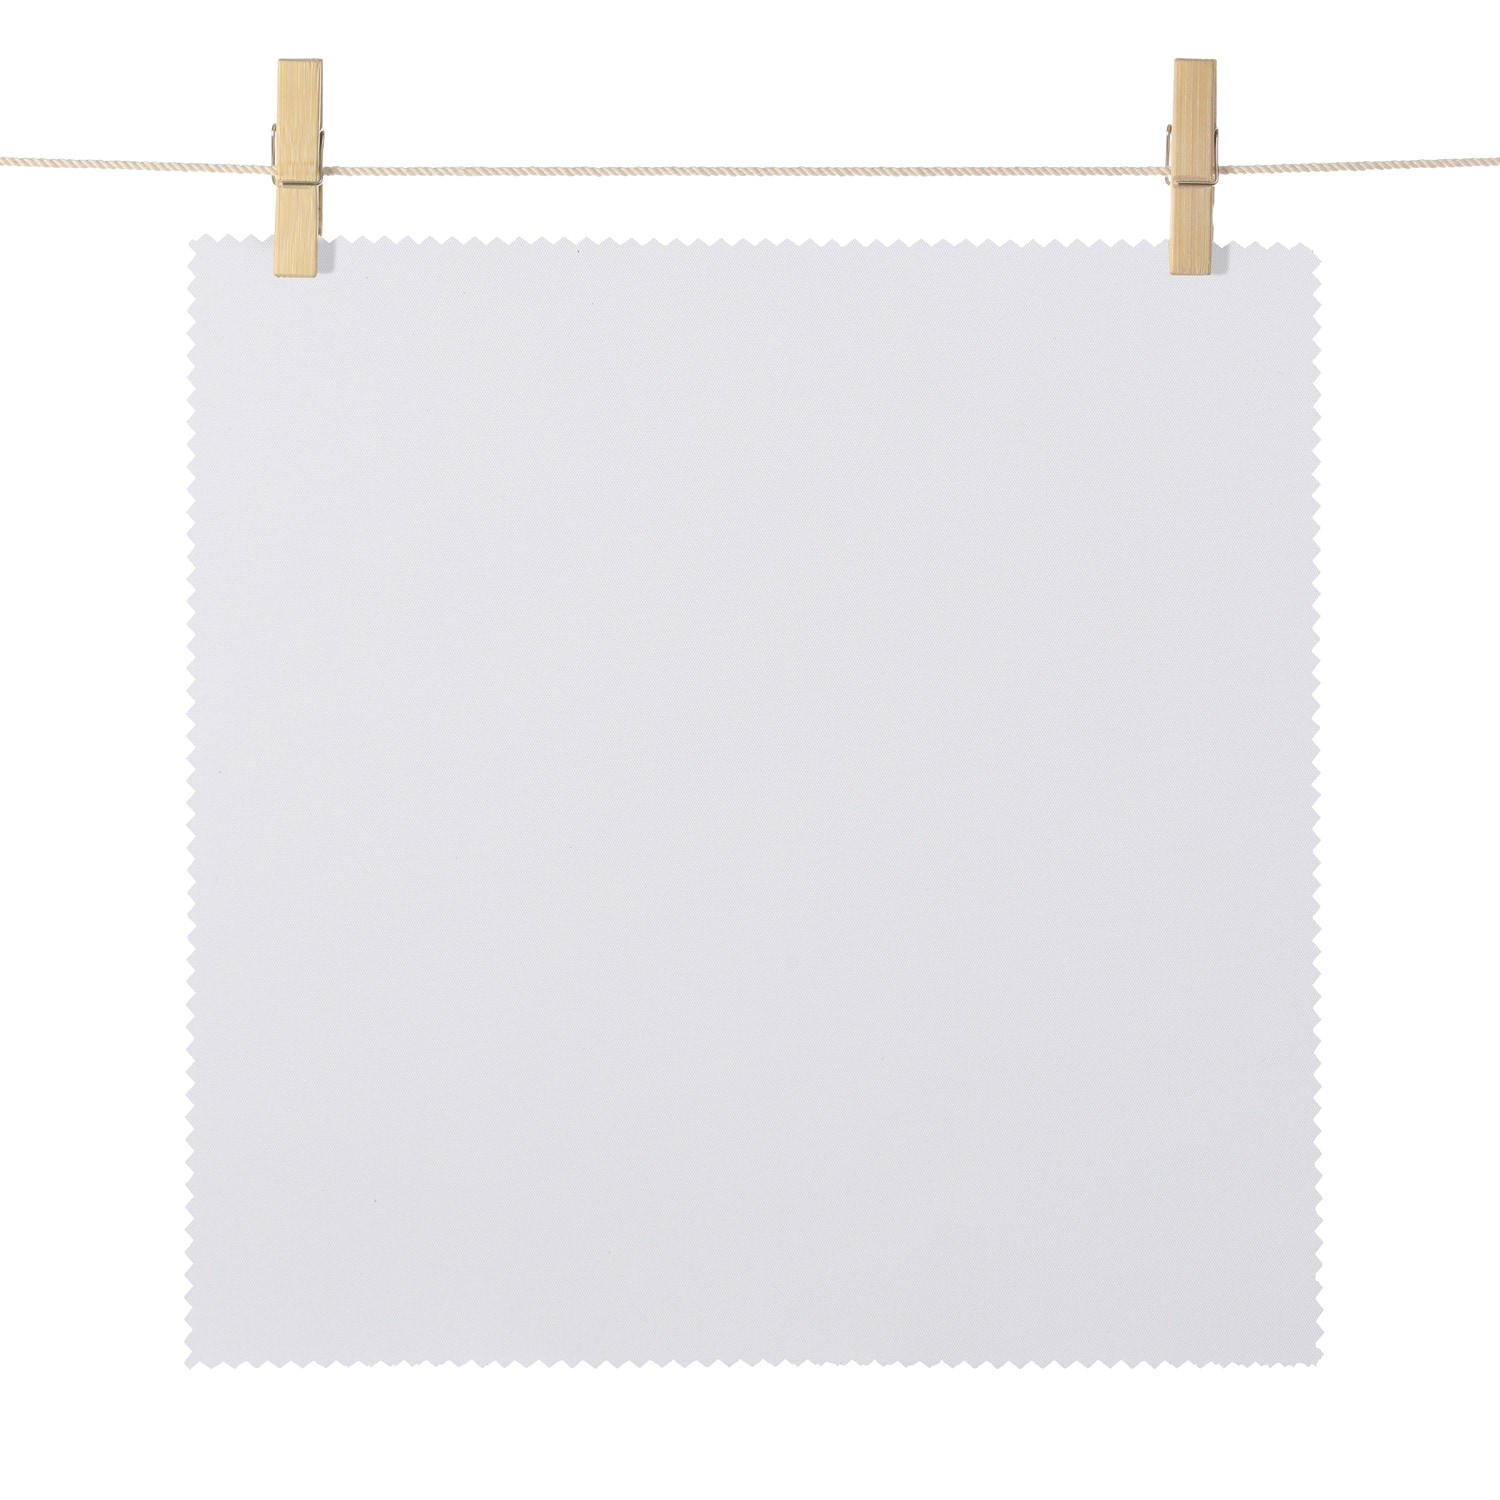 Mendocino White Broadcloth Textured Blackout Roller Shade Swatch